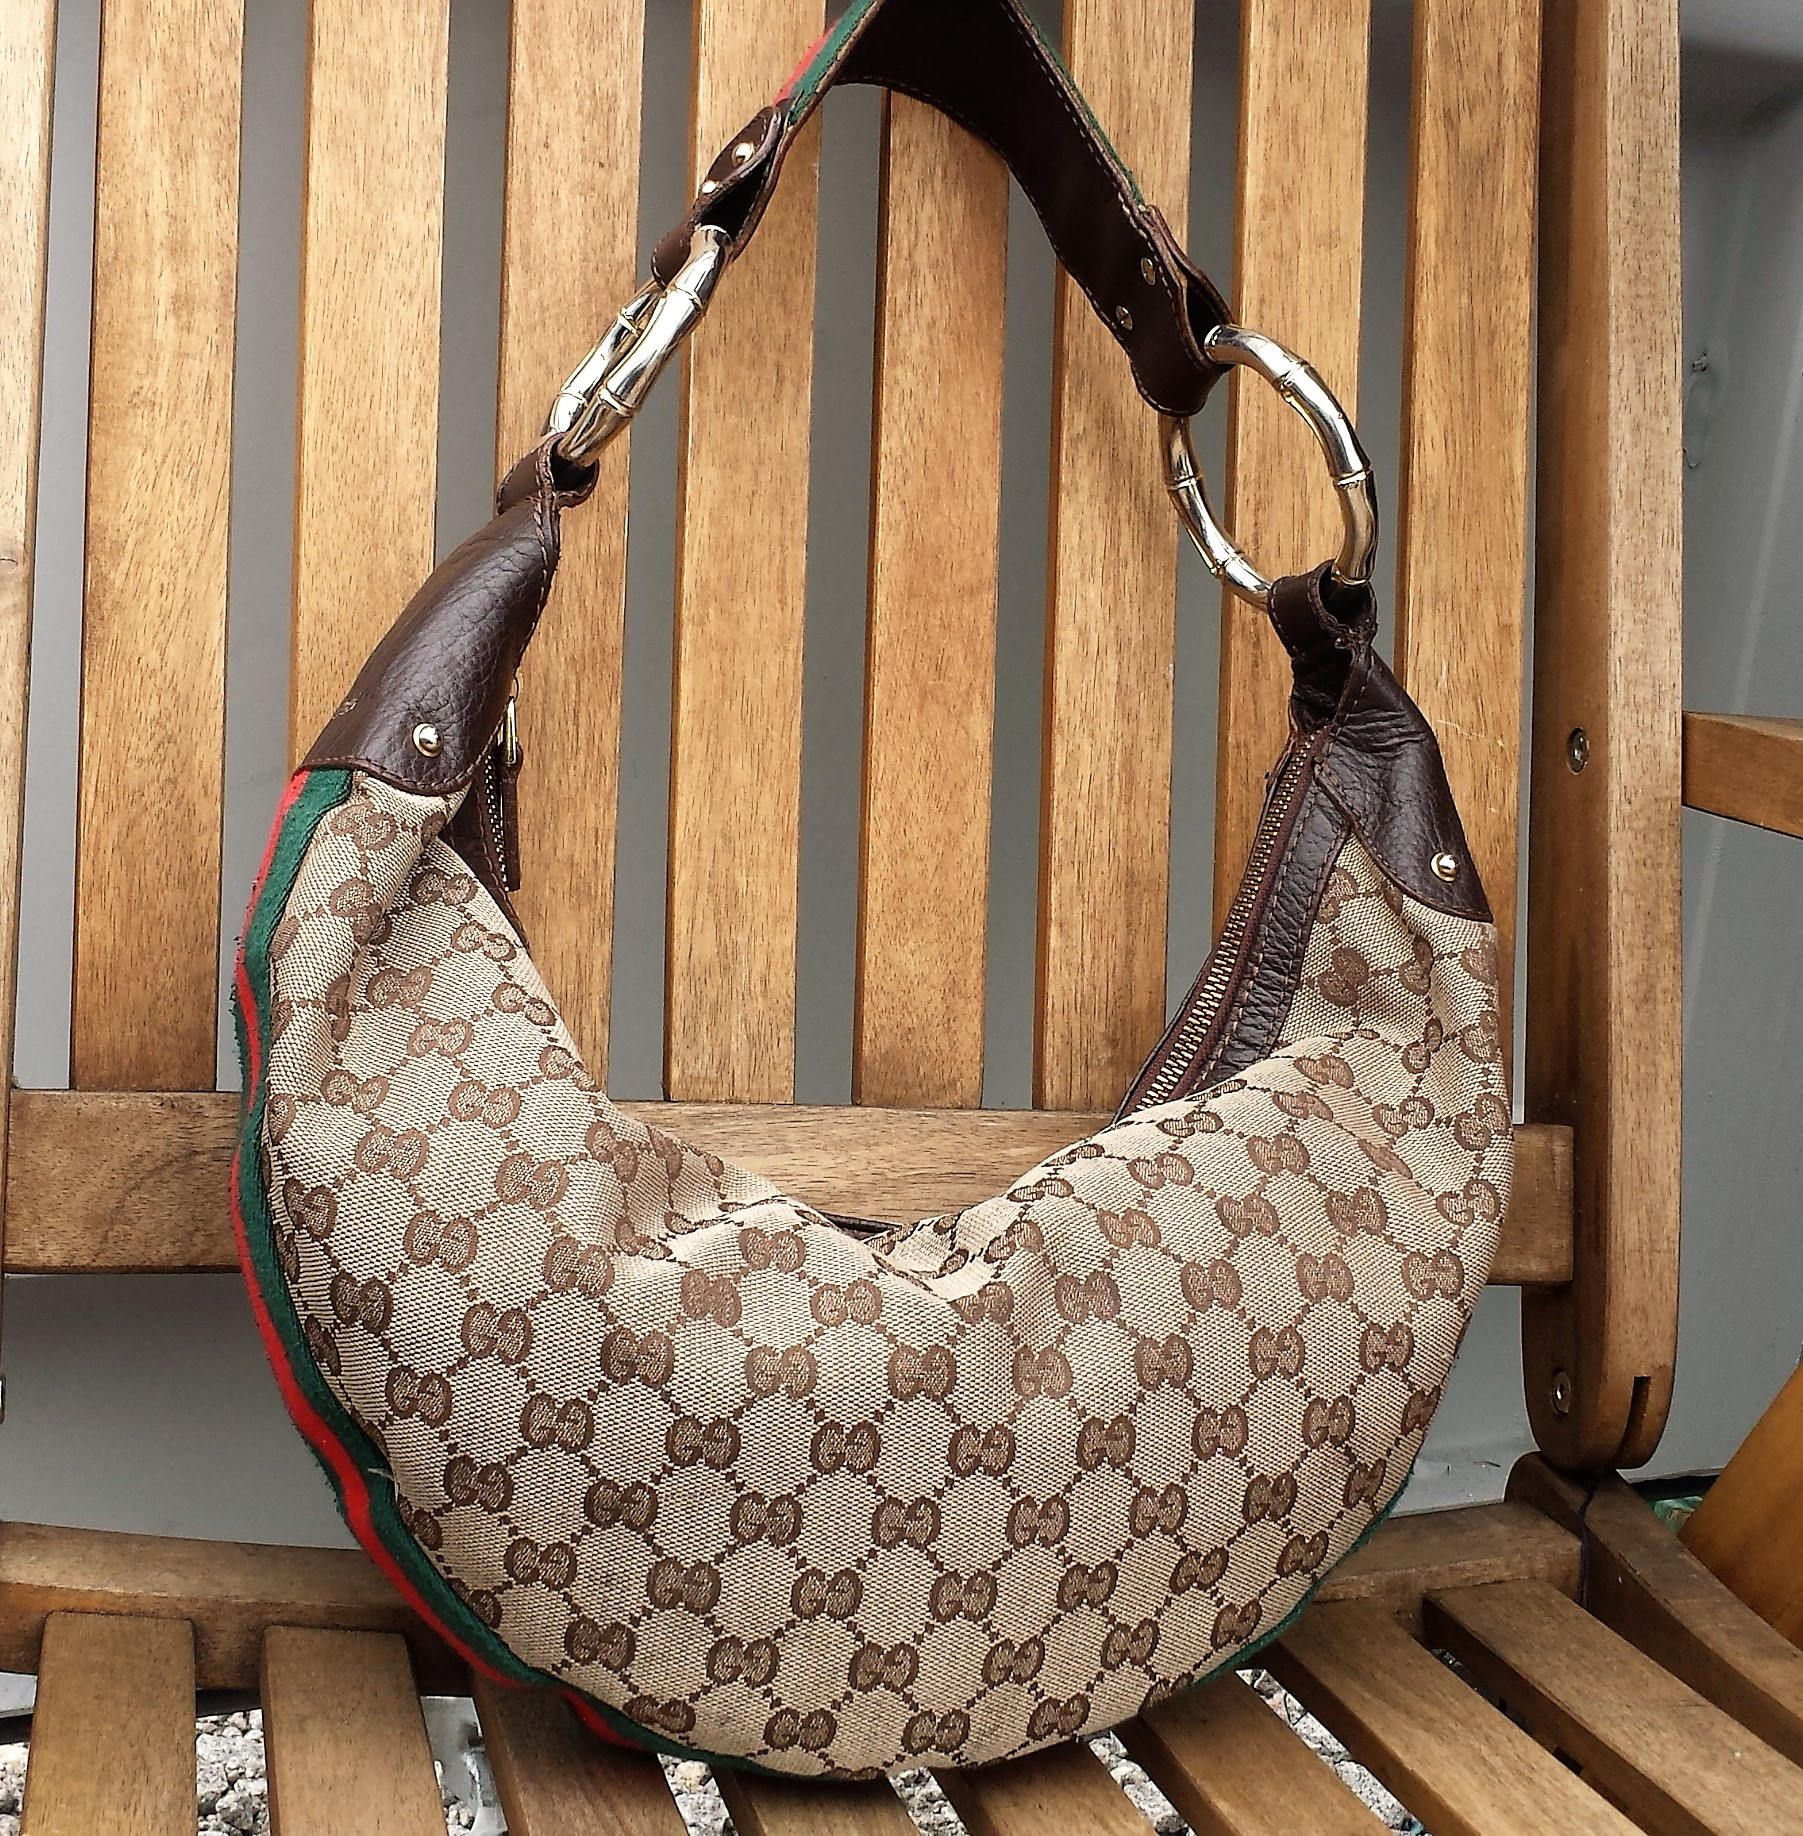 18aff6c3958 Vintage Gucci Leather and Monogram Hobo Handbag   Purse by LuckSy on Etsy